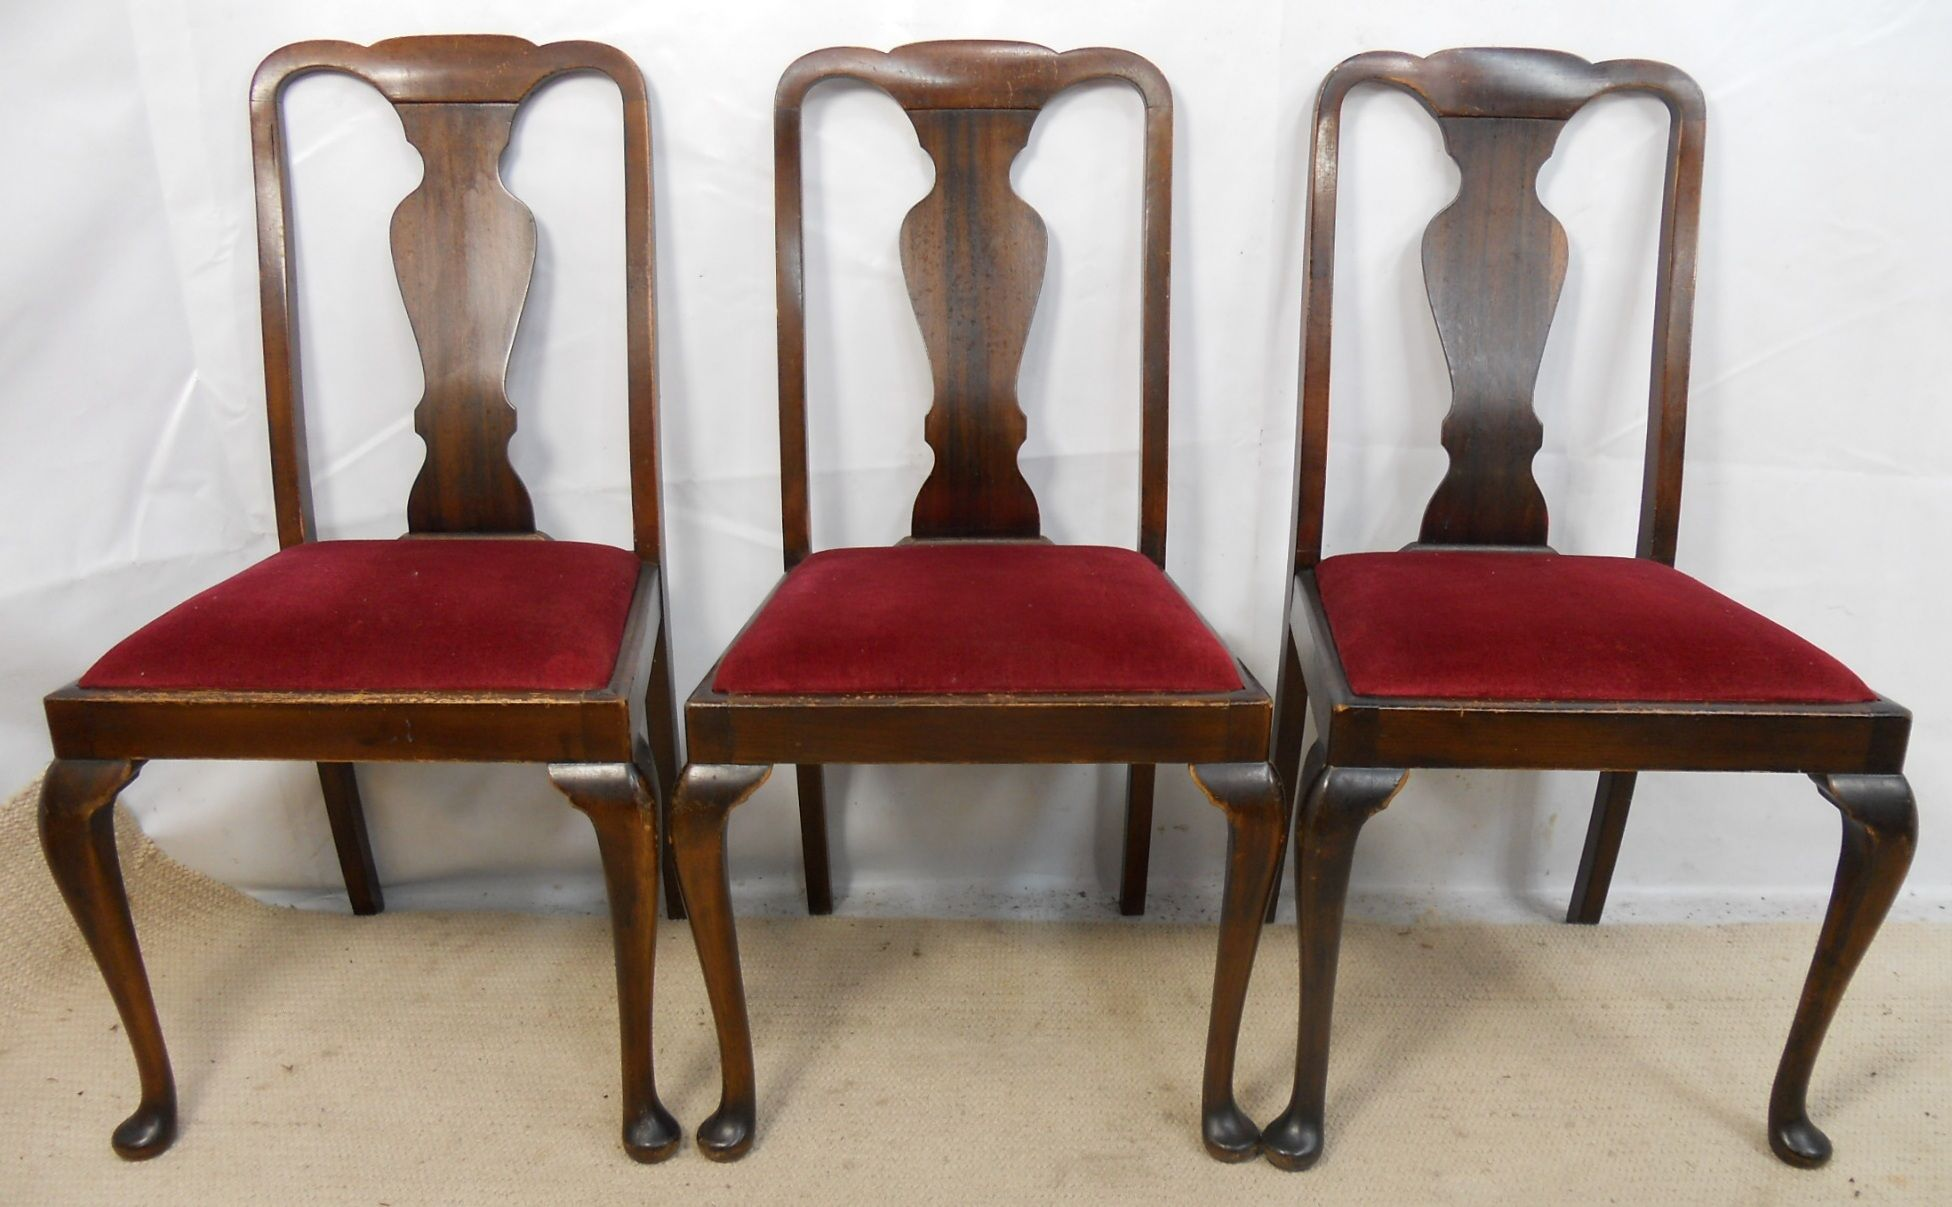 of Four Walnut Highback Queen Anne Style Dining Chairs SOLD